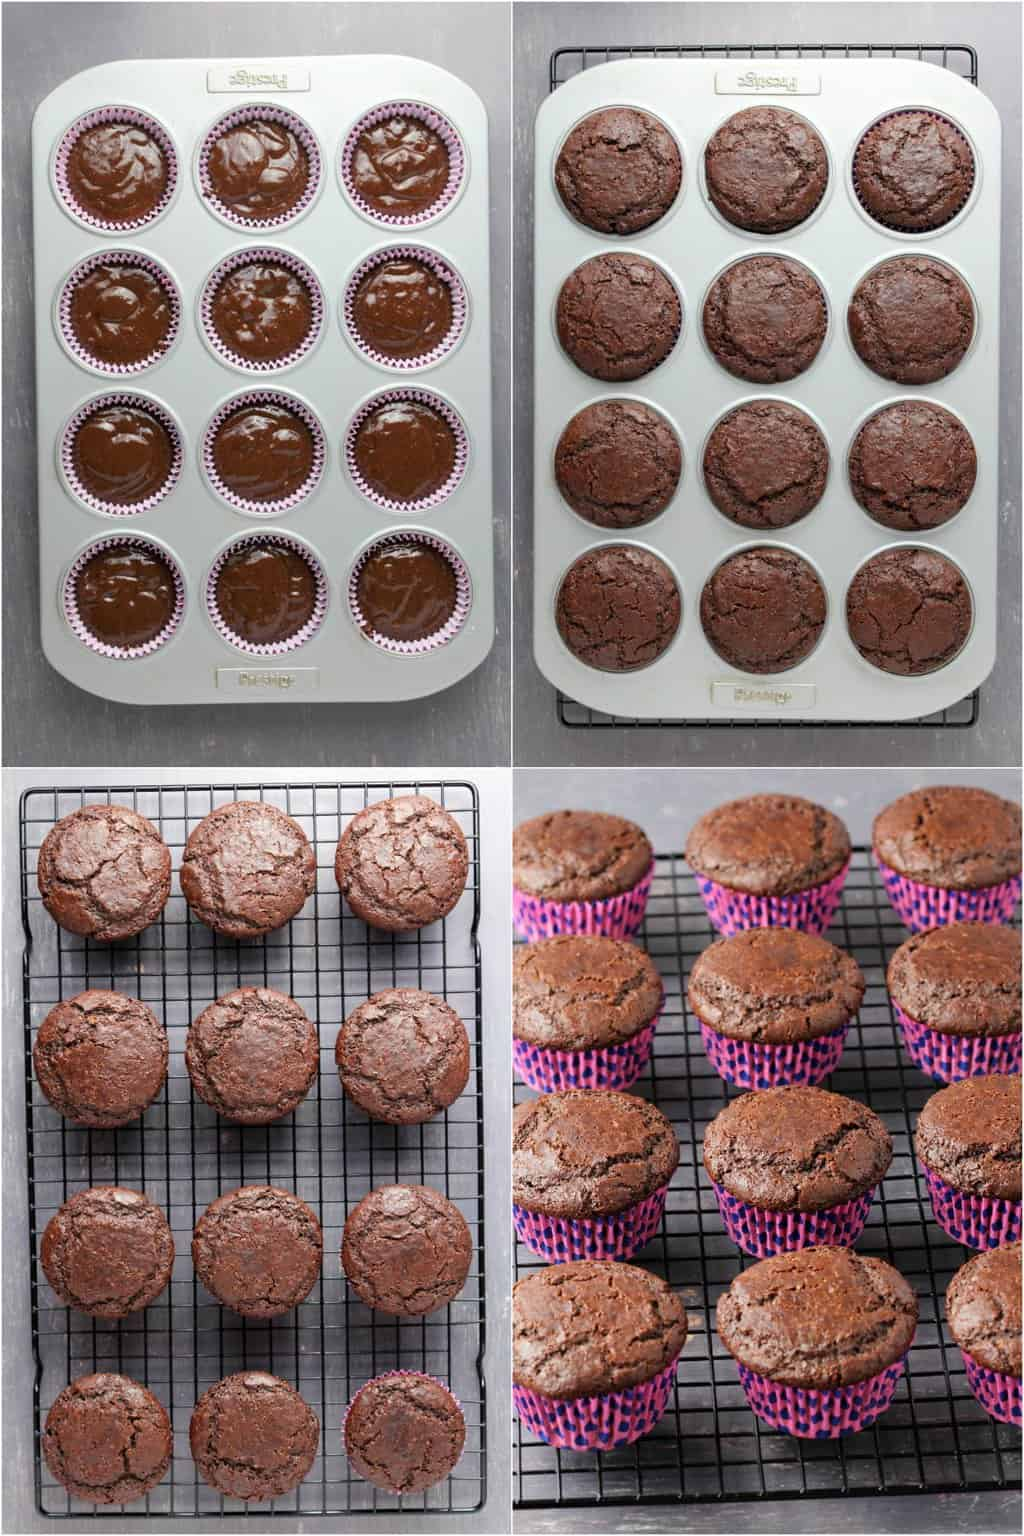 Step by step process photos of making gluten-free chocolate cupcakes